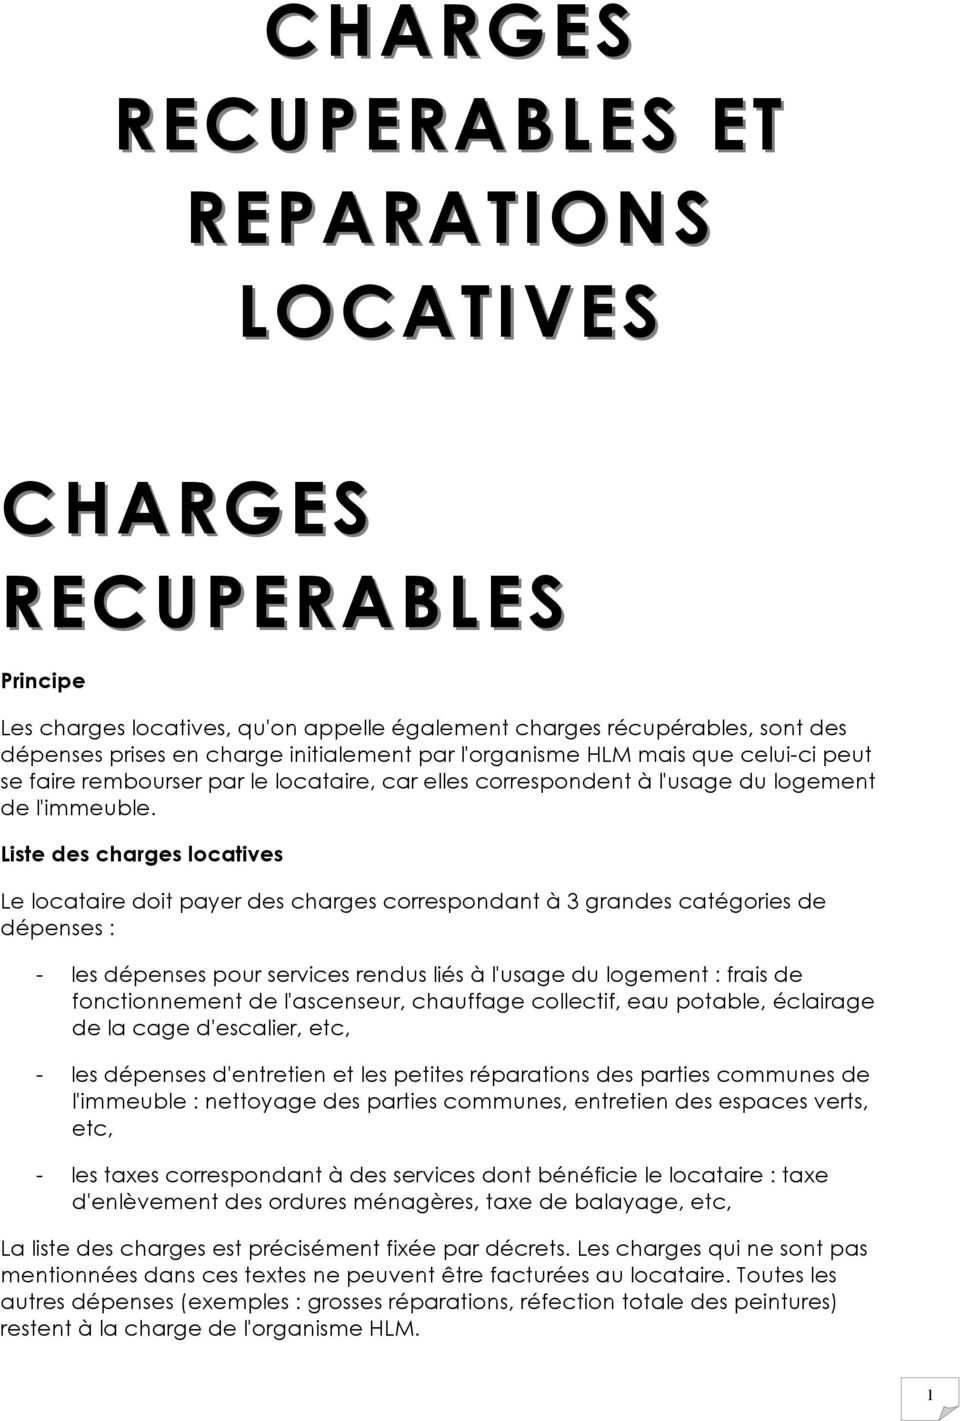 Charges charges recuperables et reparations locatives pdf - Repartition des charges locatives ...